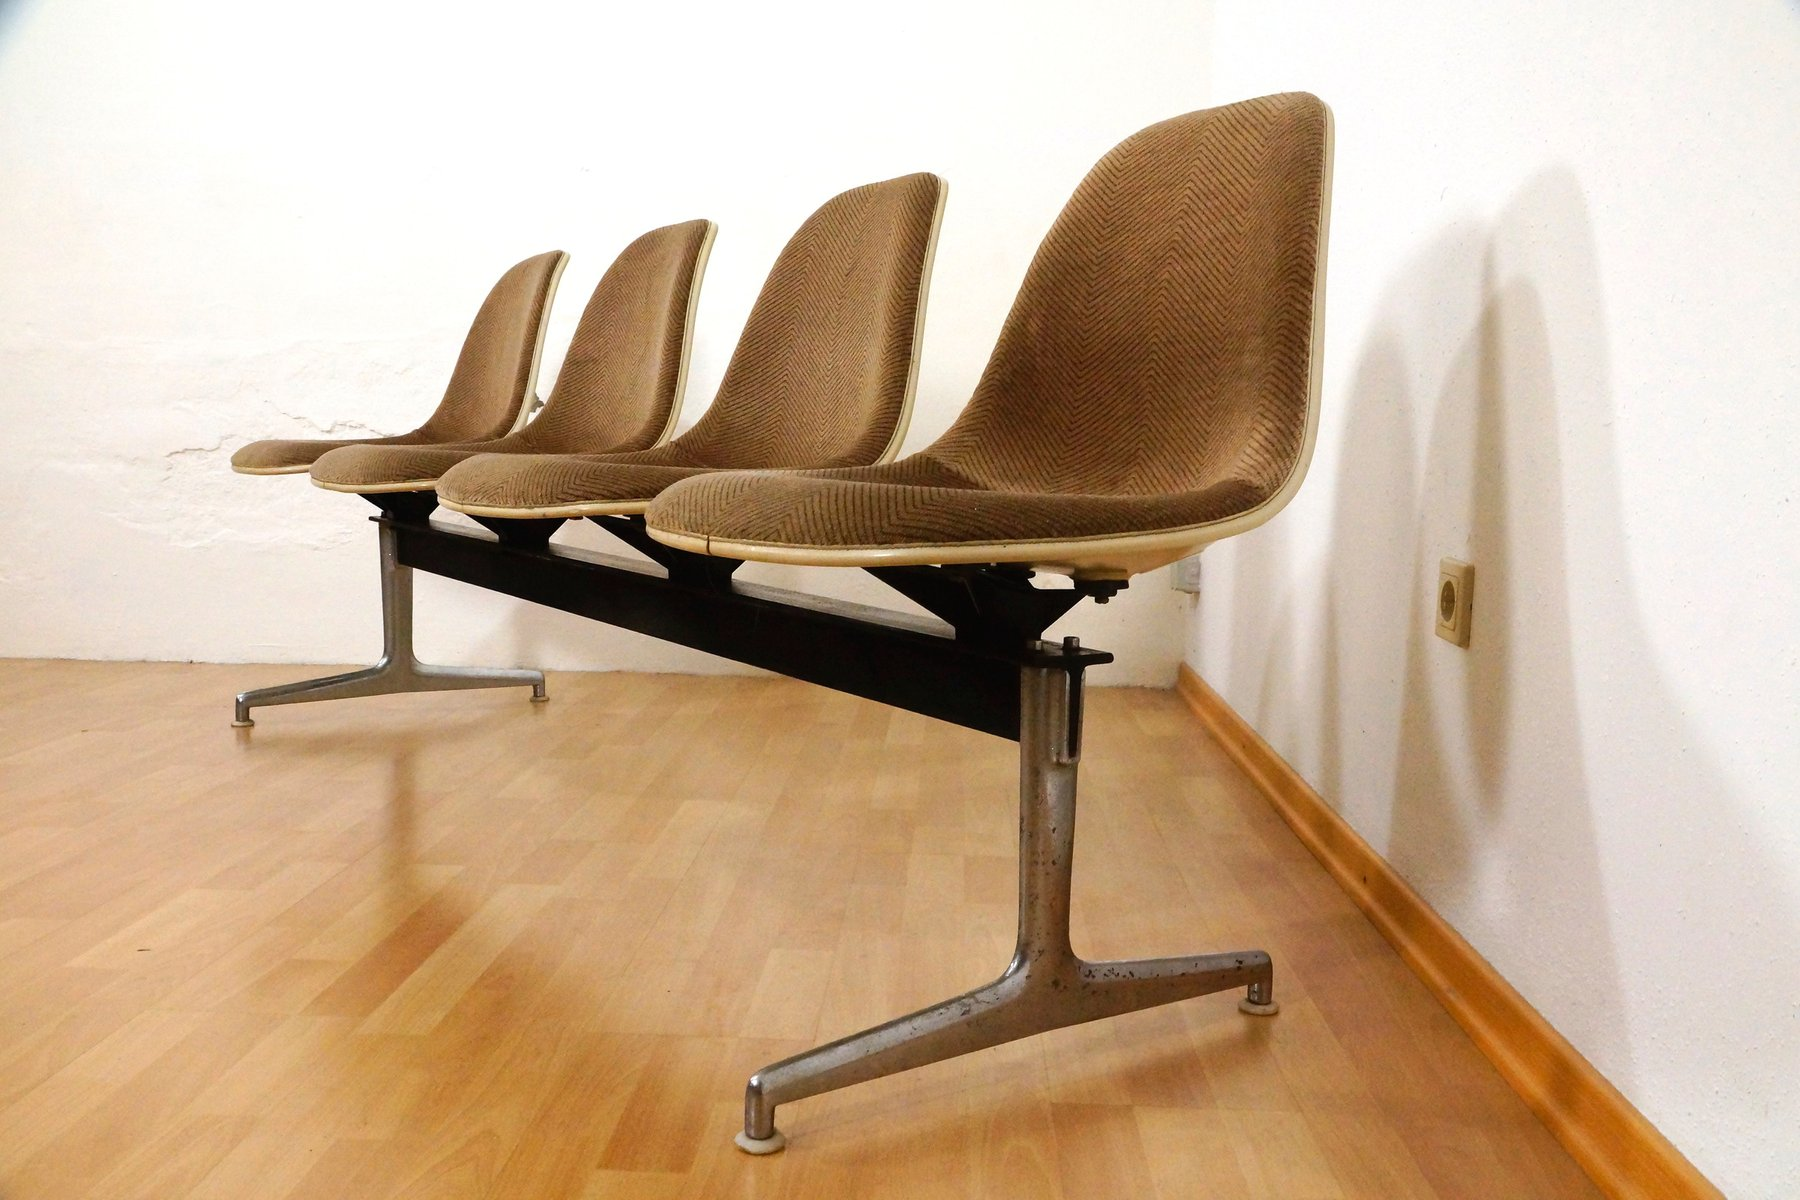 Tandem Seating Bench By Charles Eames For Herman Miller 1964 For Sale At Pamono